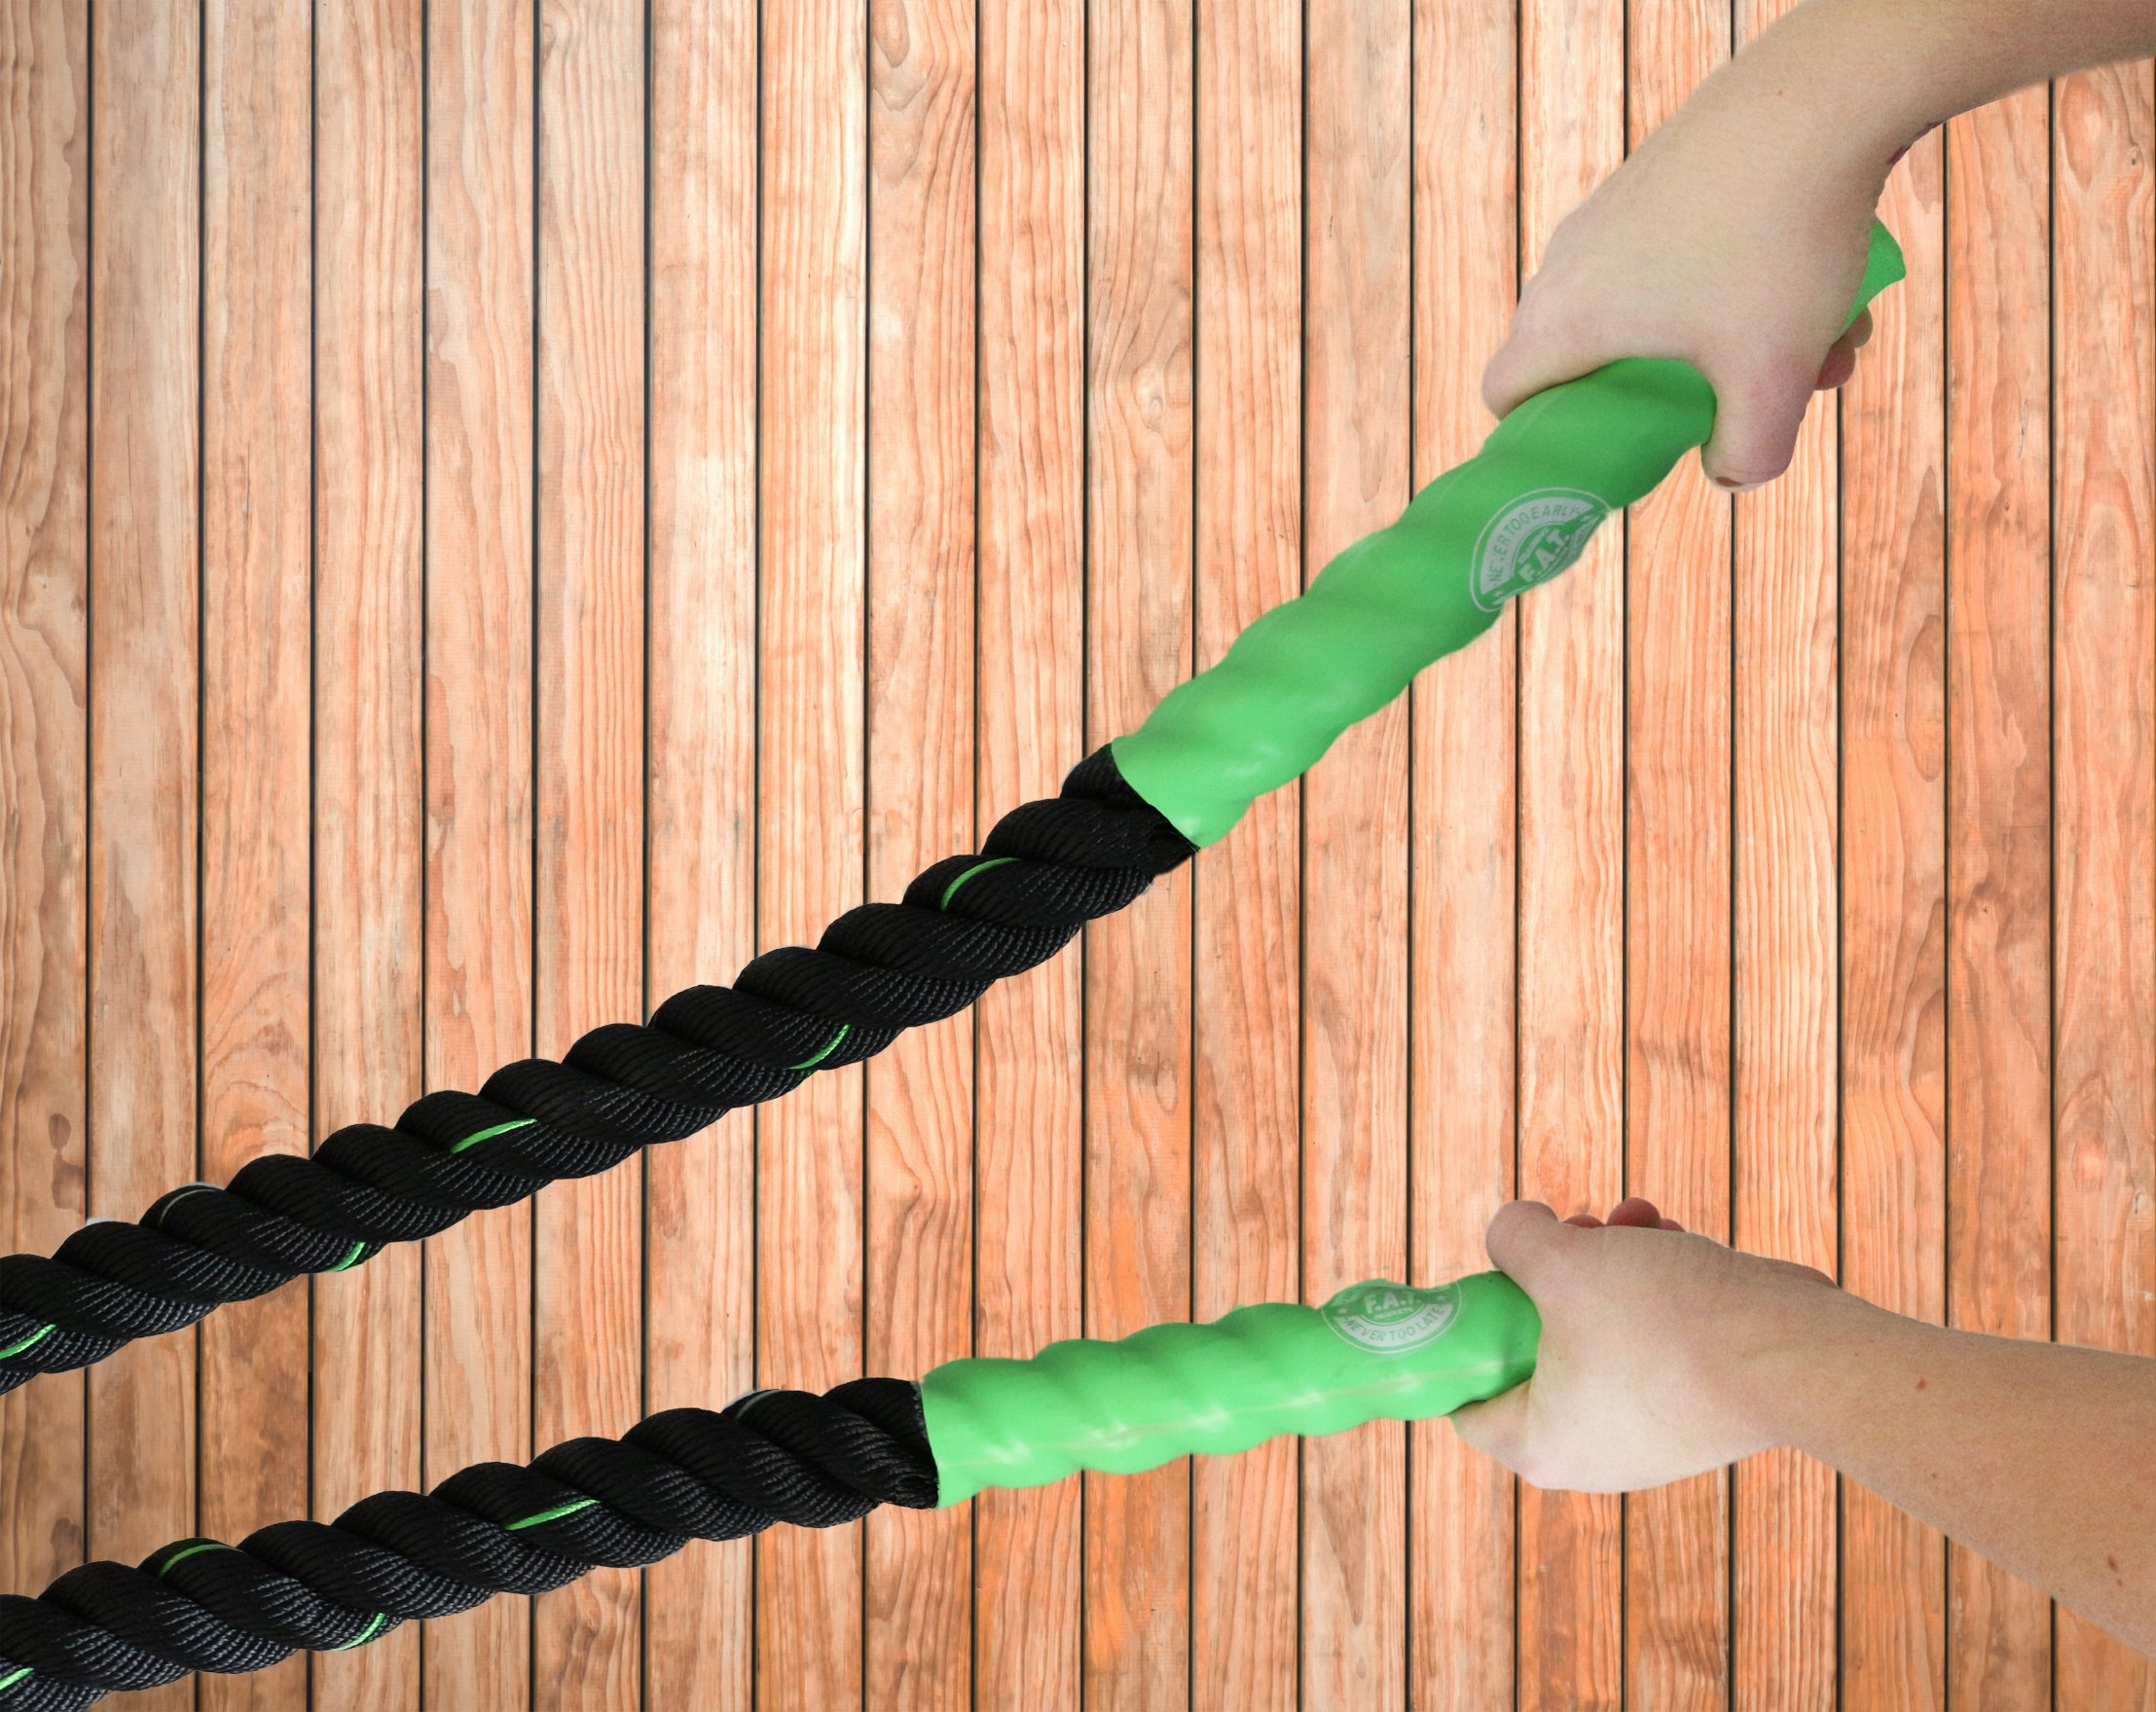 Battle Ropes Fitness | Cardio Exercise Rope Training | Best Gym Workout for Home - 40' feet x 1.5'' inch - Green by Fitness Answered Training (Image #3)